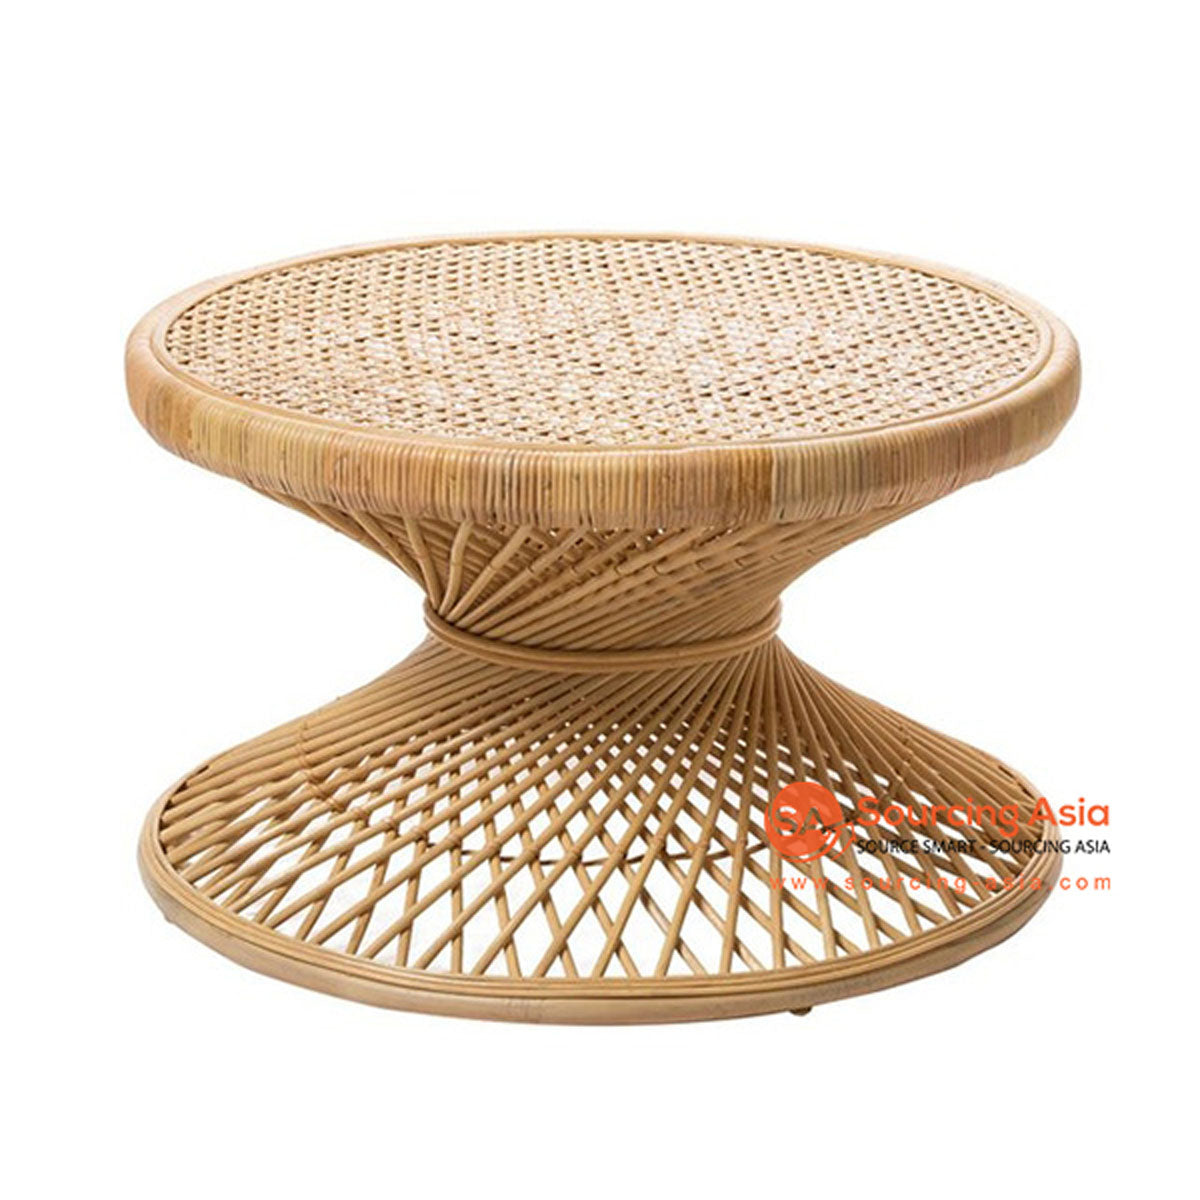 SHL156 NATURAL RATTAN LOW TWISTED TABLE WITH WIDE ROUND TOP